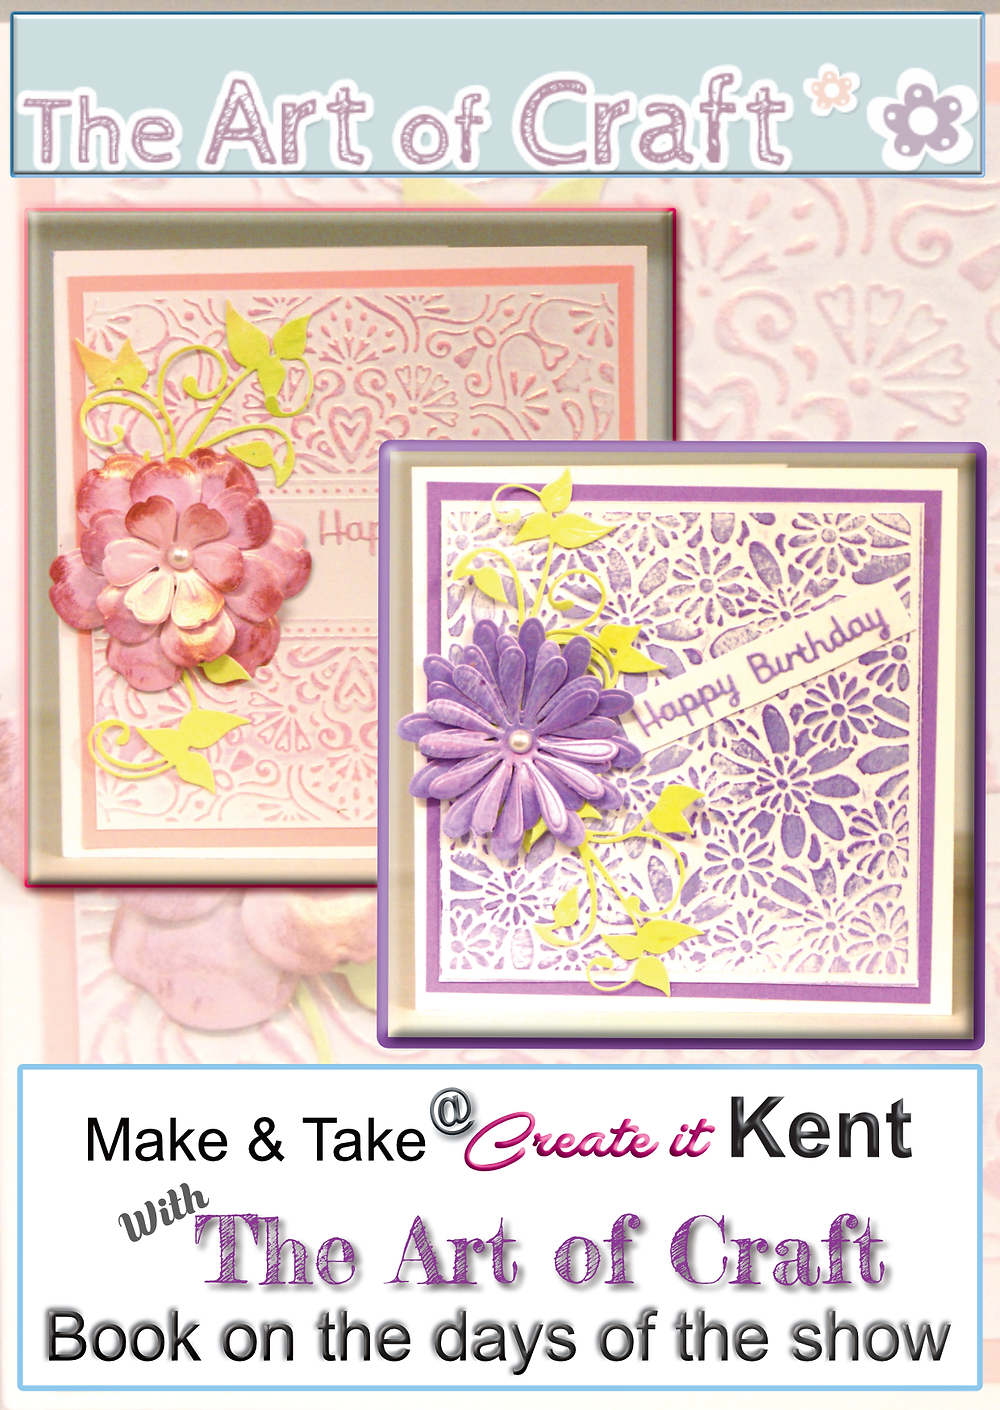 The Art of Craft at Create it Kent